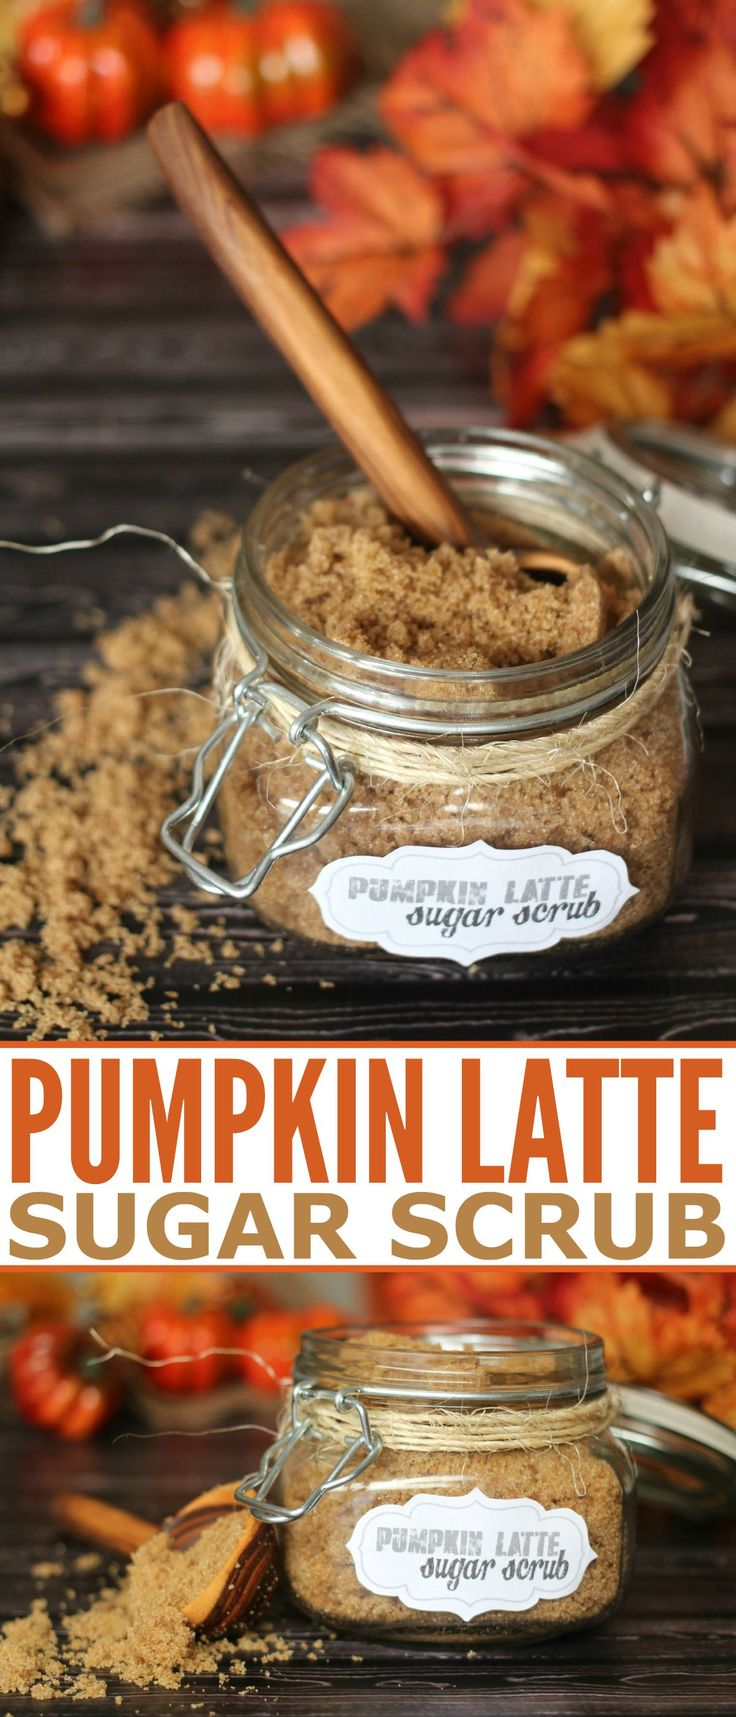 This Pumpkin Latte Sugar Scrub Recipe is a great way to bring in your fall beauty routine + get a Free Printable Label!